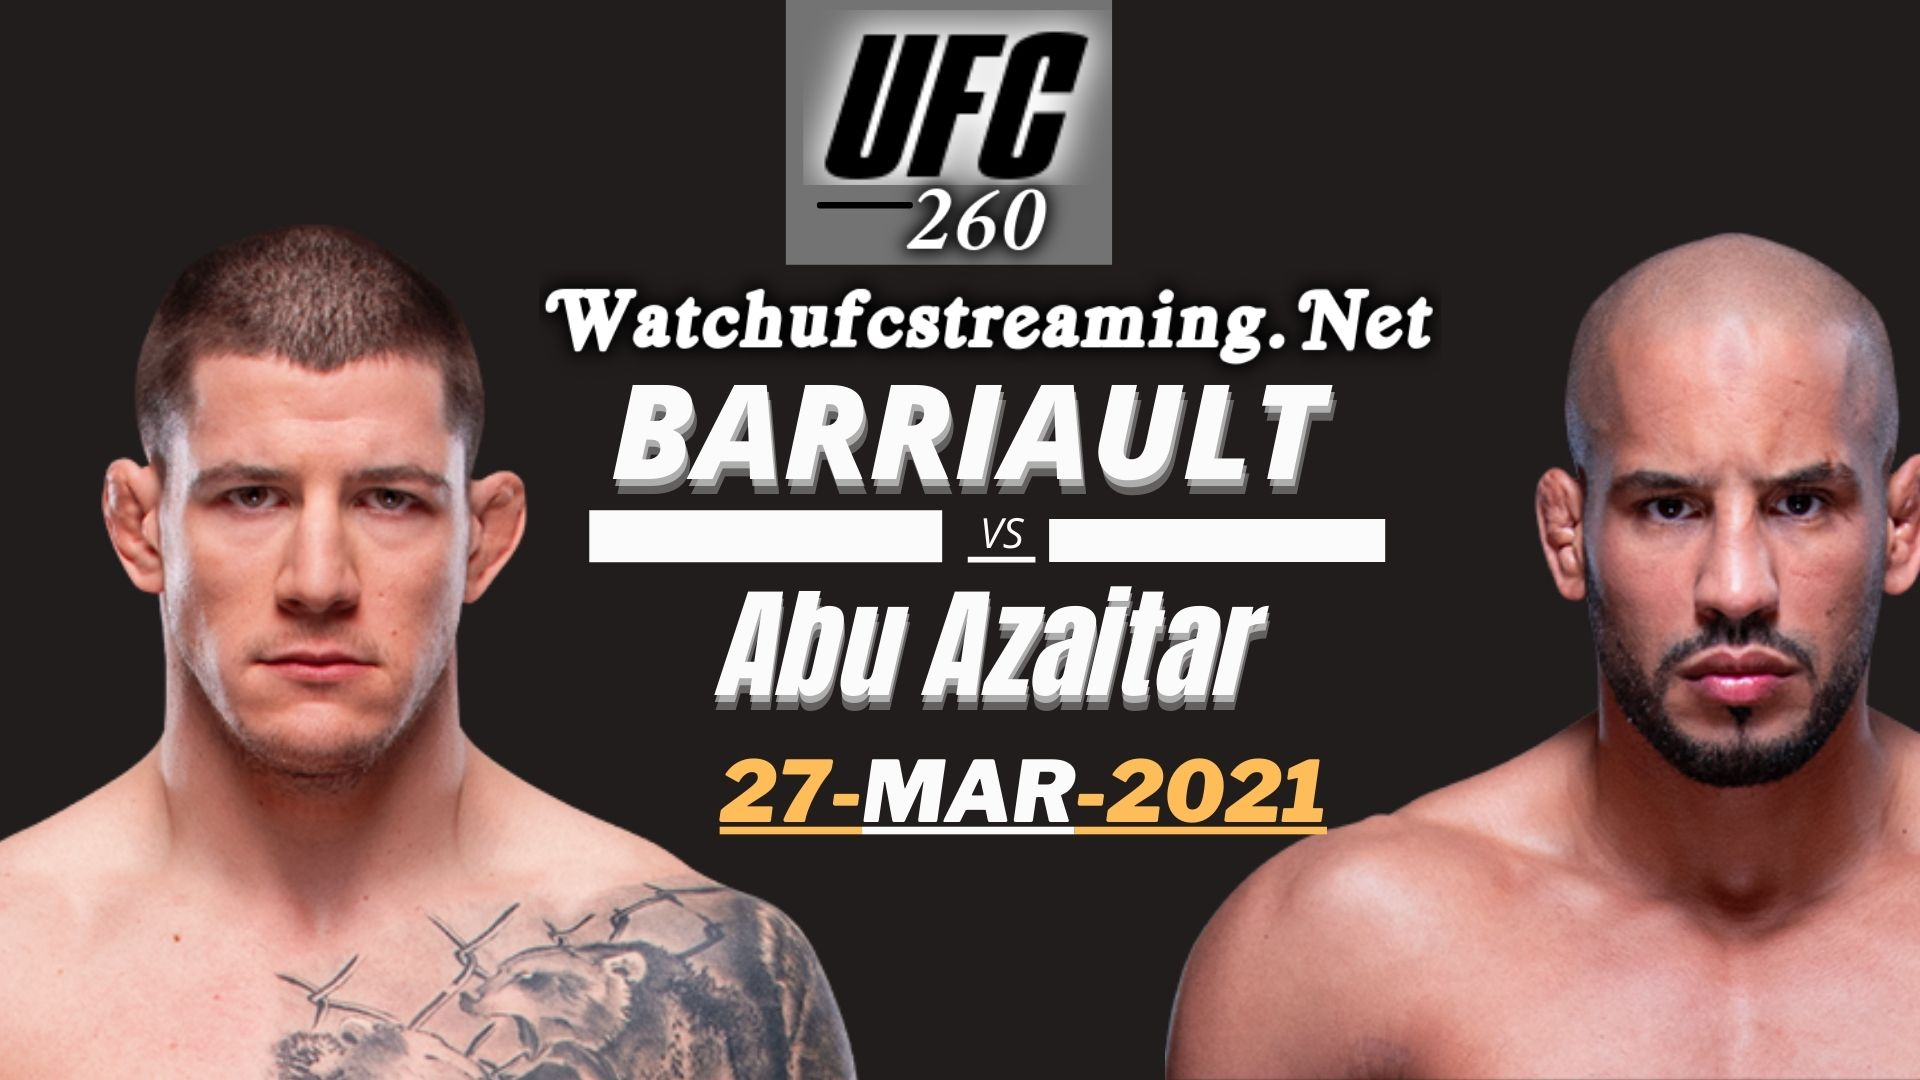 Highlights UFC 260 Barriault Vs Azaitar 2021